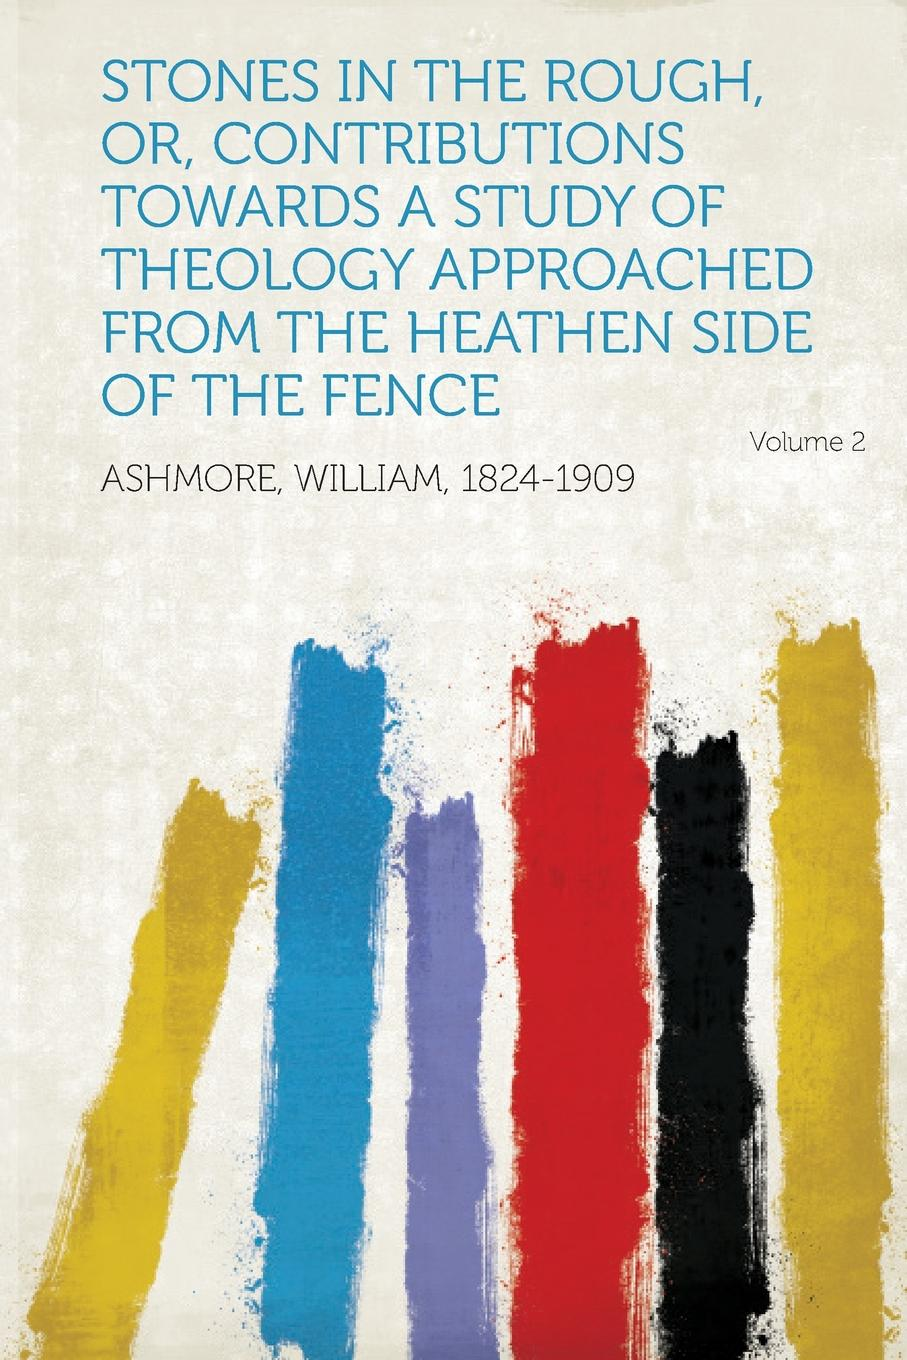 Stones in the Rough, Or, Contributions Towards a Study of Theology Approached from the Heathen Side of the Fence Volume 2 joan l busby dee uyeda the other side of the fence